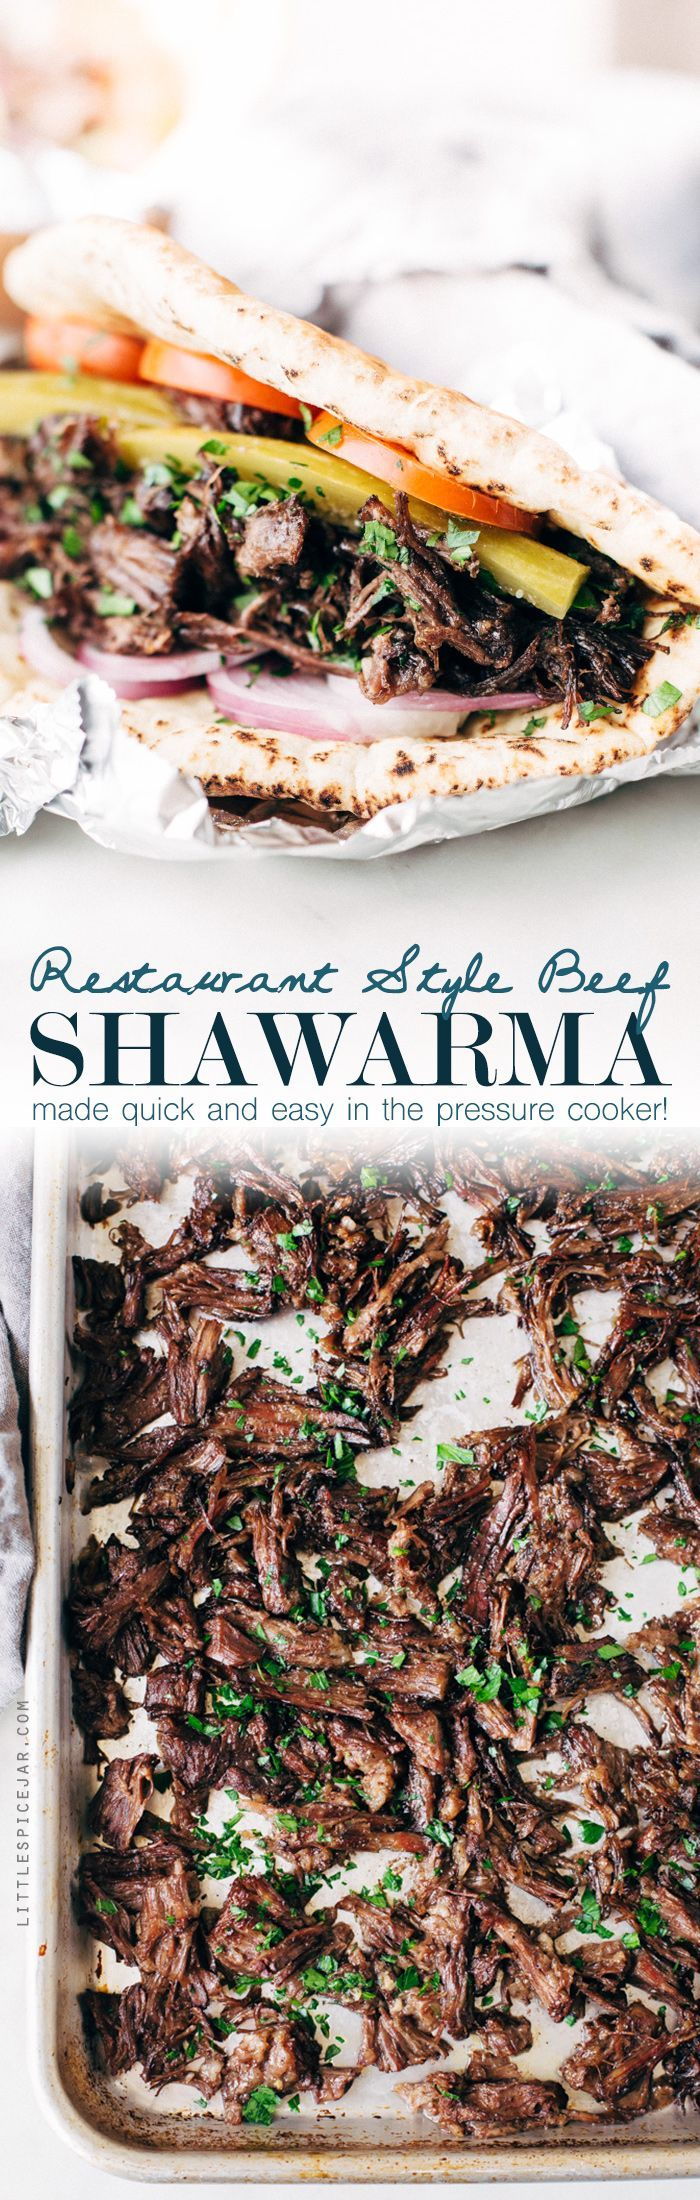 The BEST shawarma made in the pressure cooker. We're using homemade shawarma seasoning and loading it all into the Instant Pot. It's so good! This shredded beef can be used immediately or frozen for later! Little Spice Jar